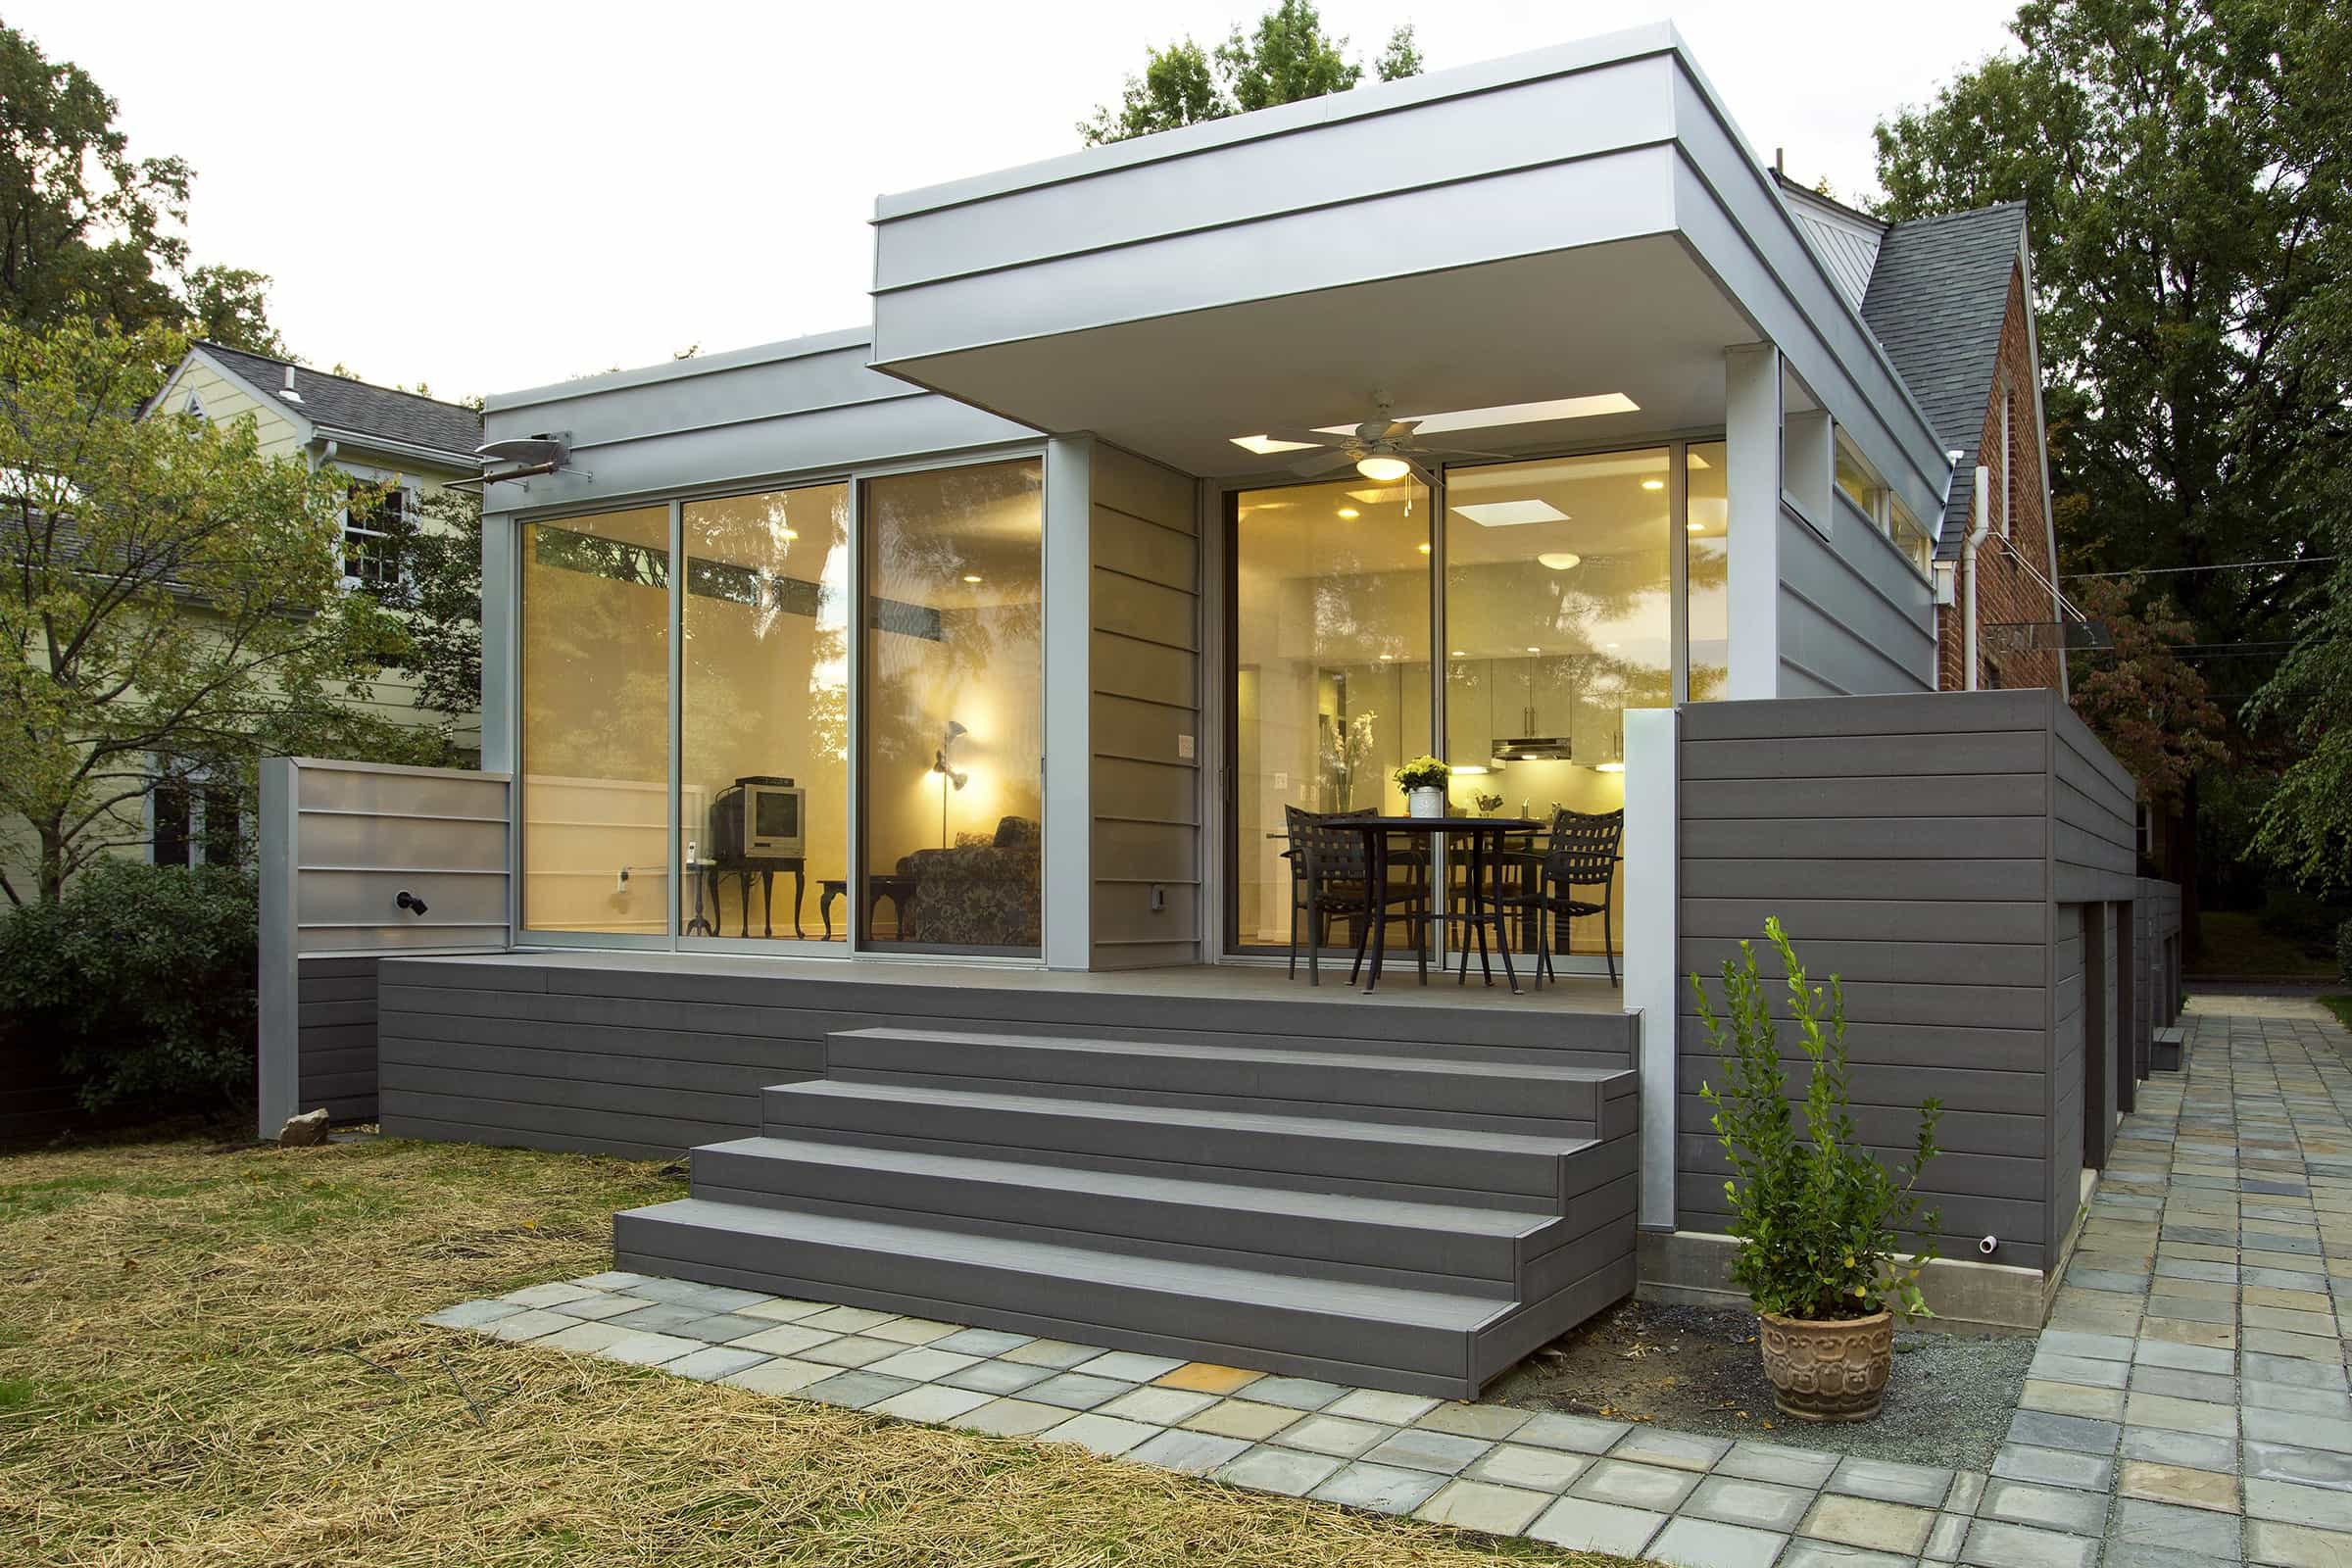 Featured Image of Cape Cod Home With Glass Sliding Doors And Patio